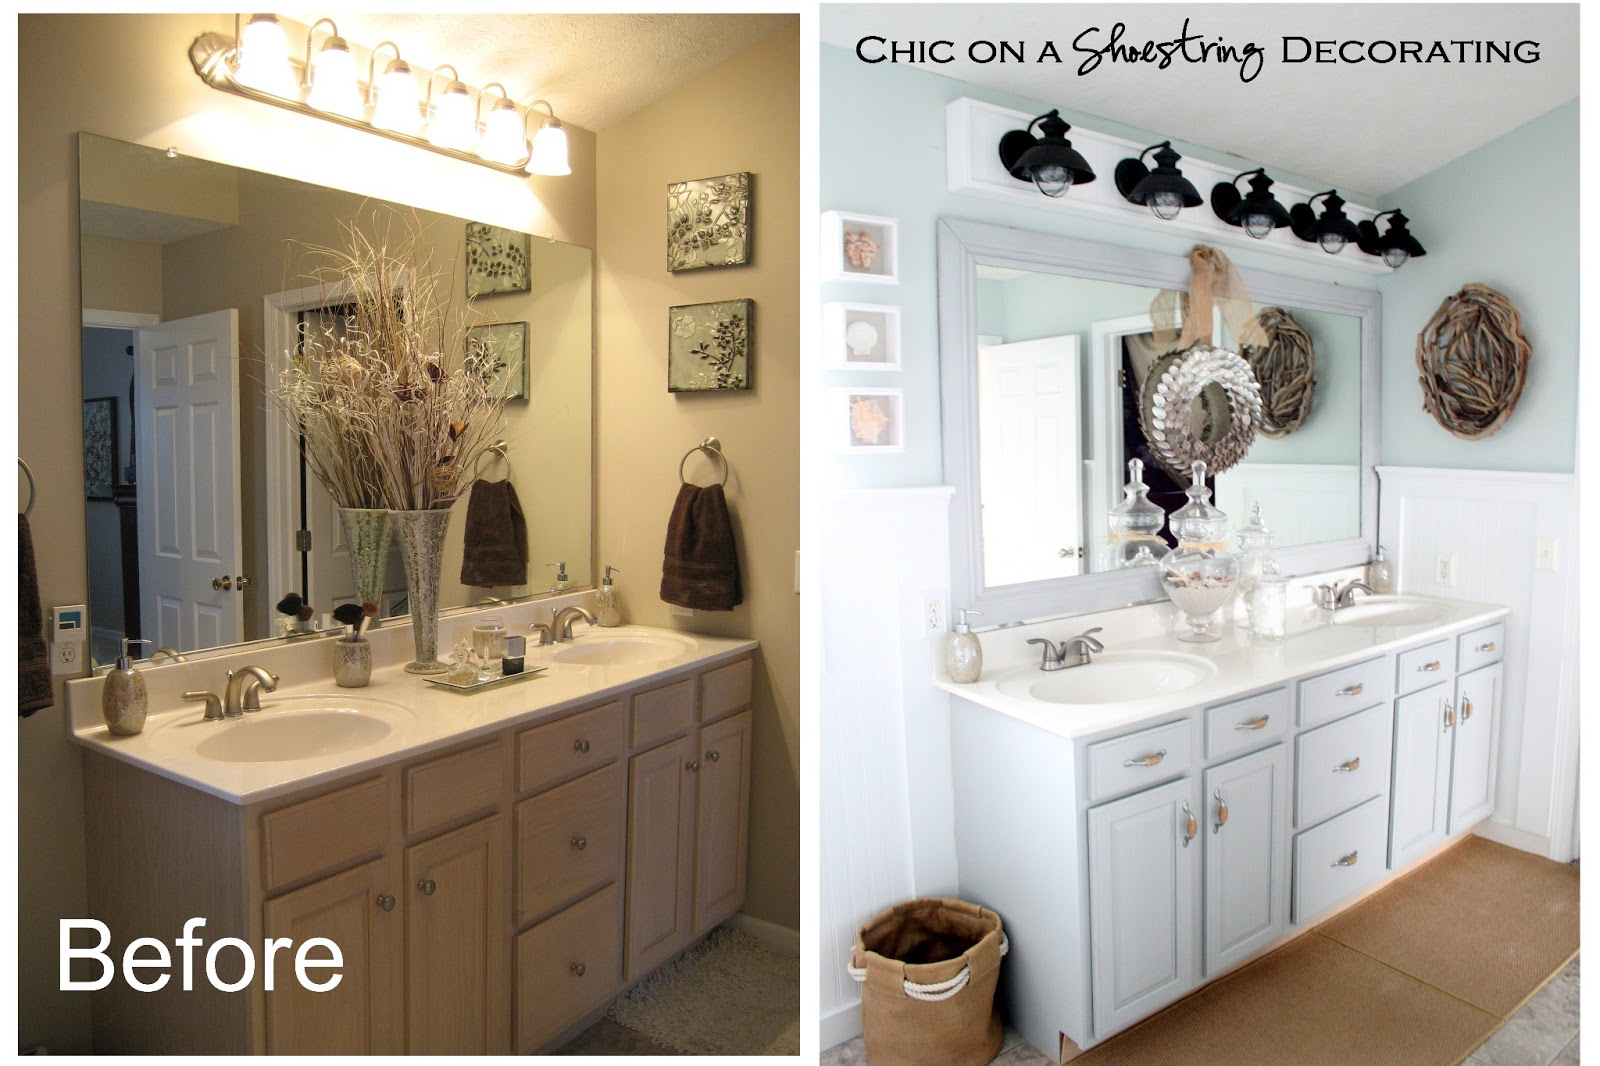 Beach Coastal Bathroom By Chic On A Shoestring Decorating We Kept Tight Budget